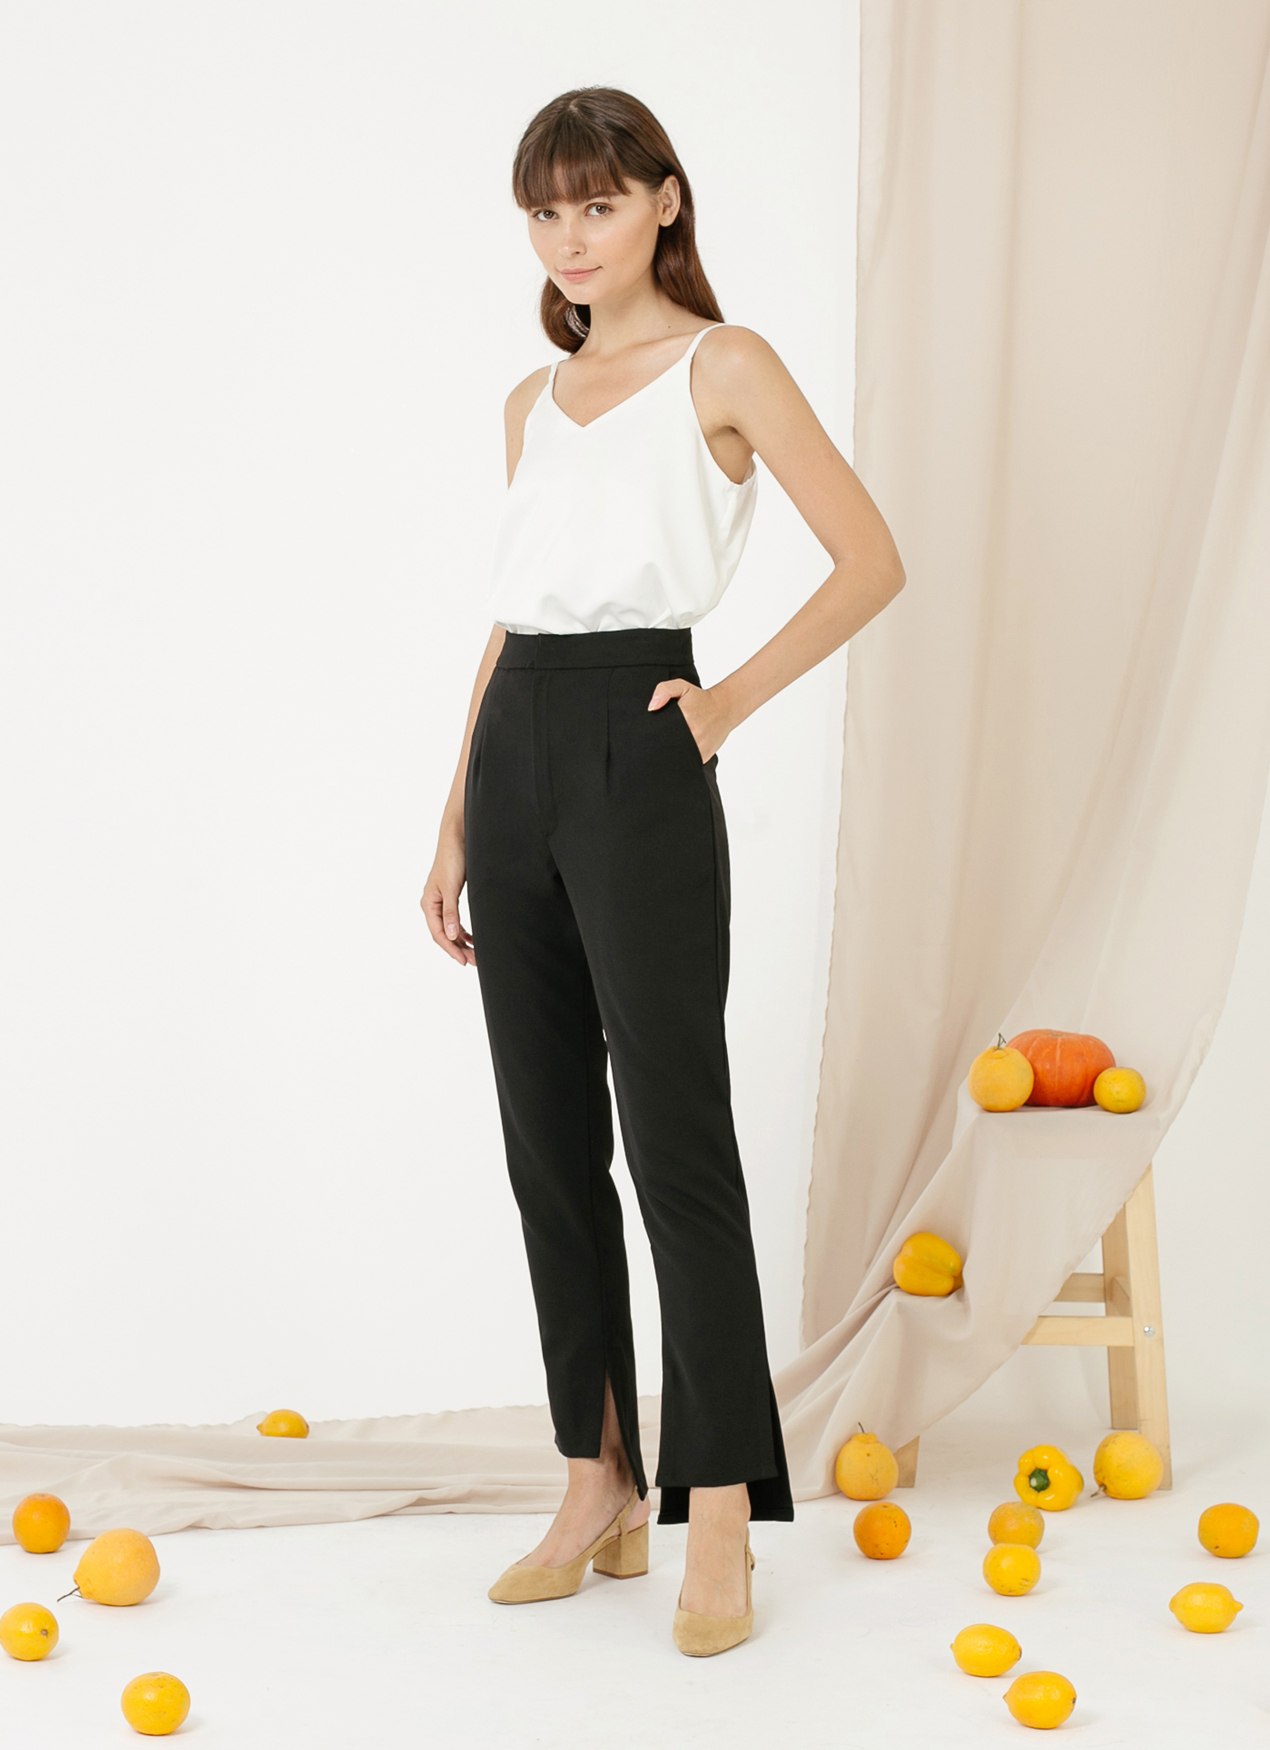 CLOTH INC Picolo Slit Pants - Black